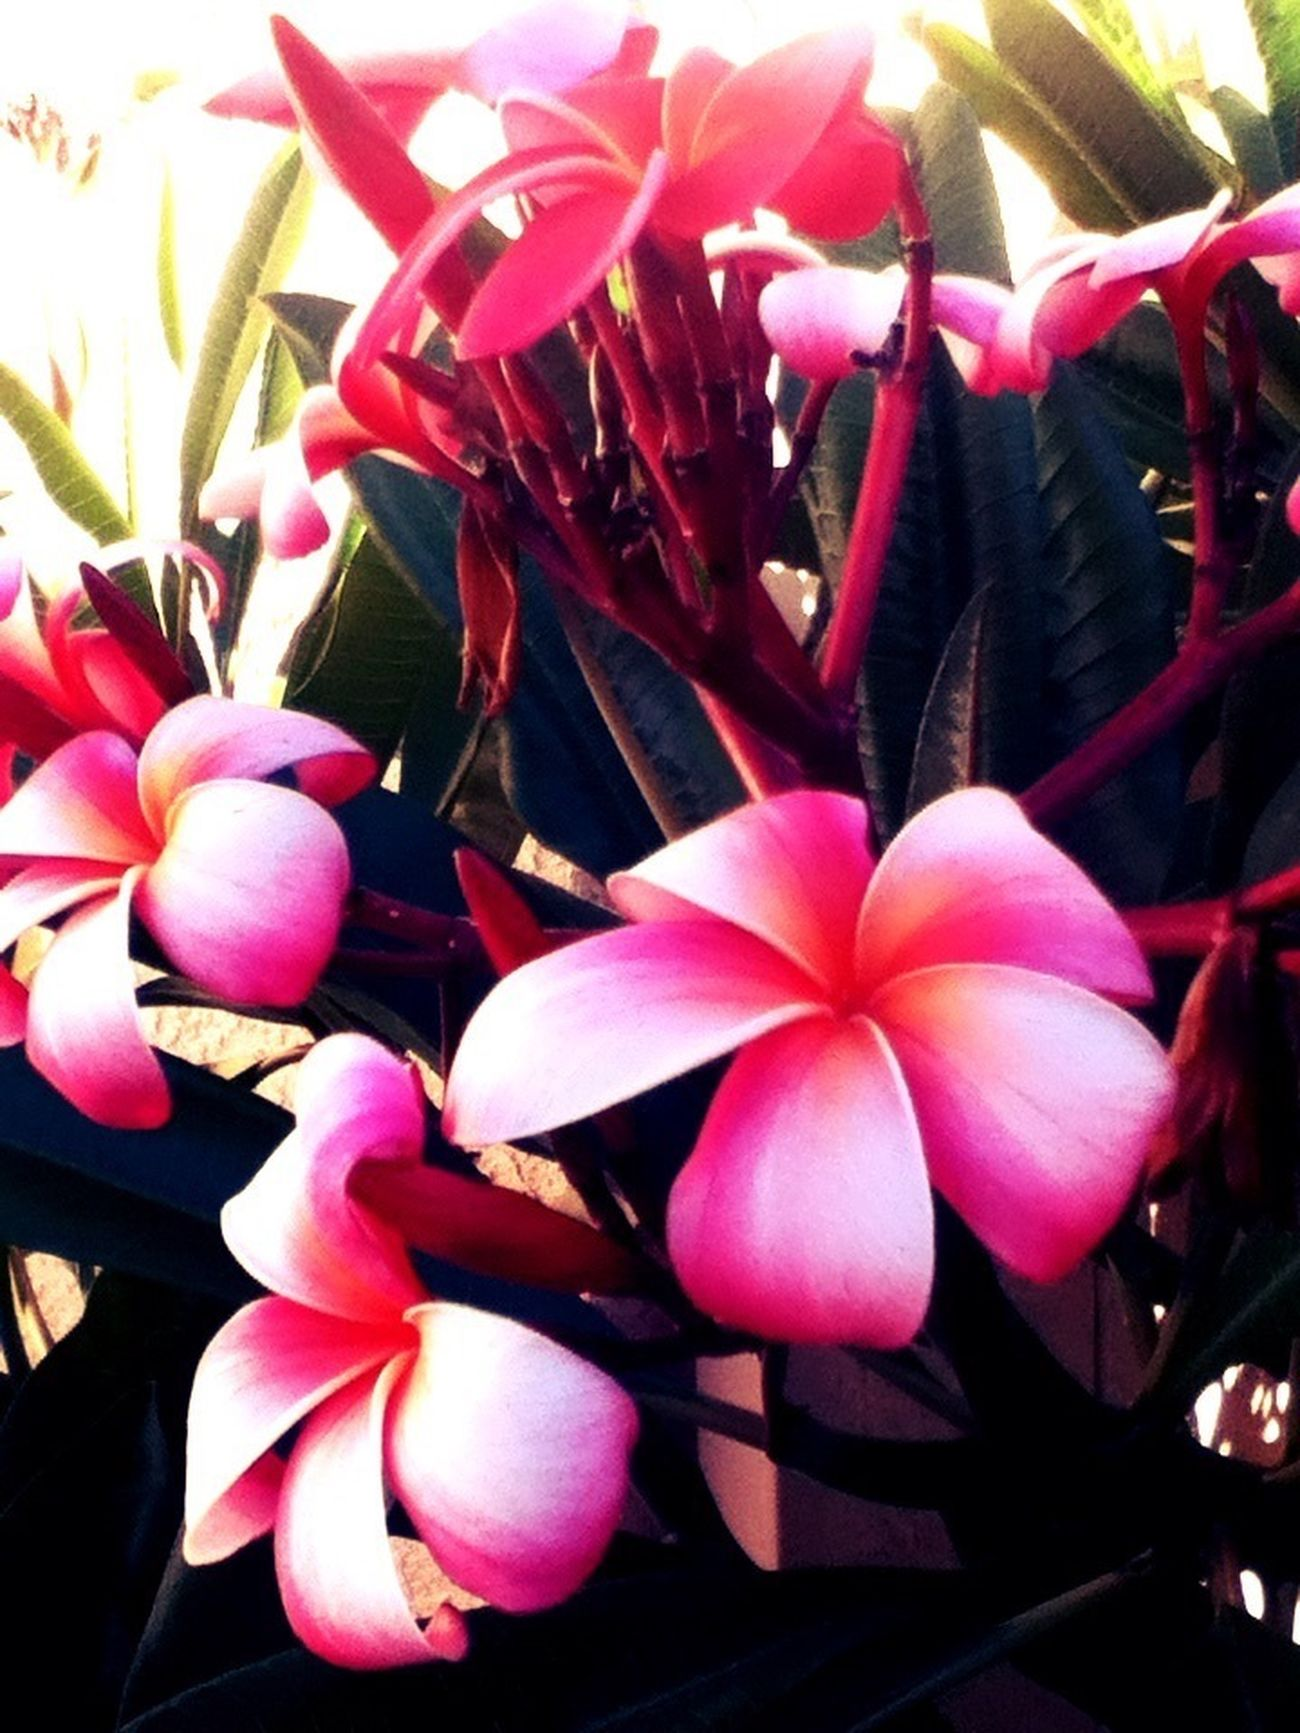 Taking pictures of flowers that one day ☀